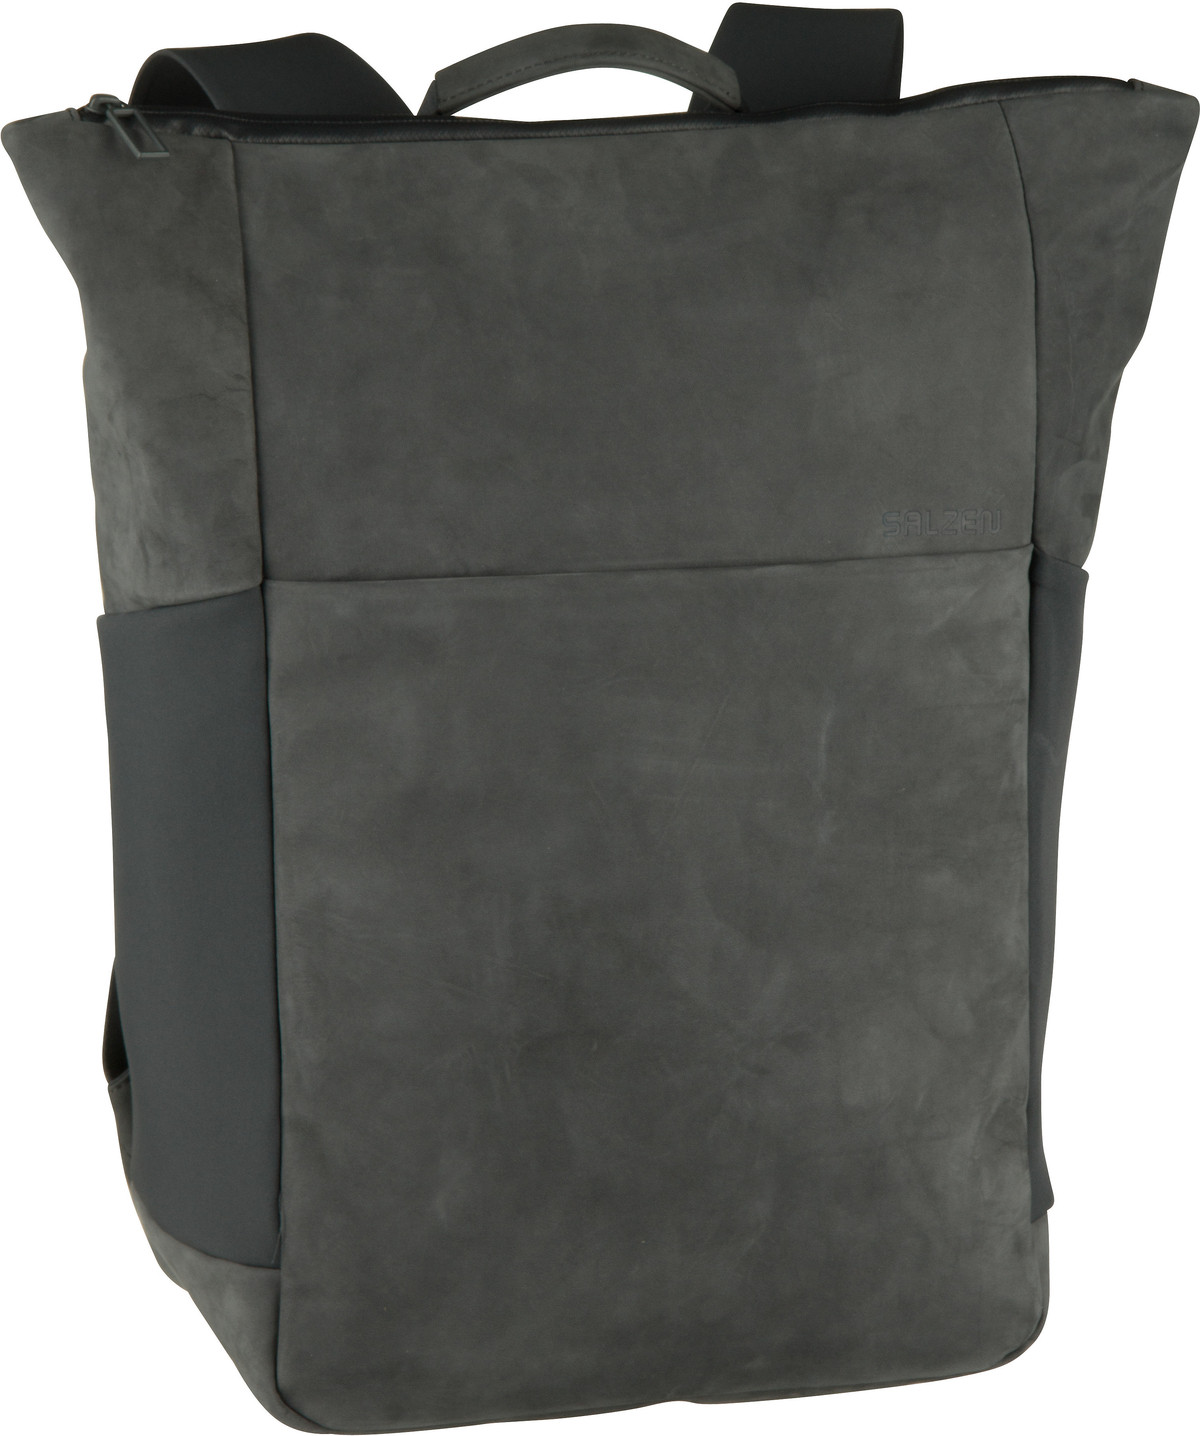 Rucksack / Daypack Vertiplorer Leather Slate Grey (21 Liter)